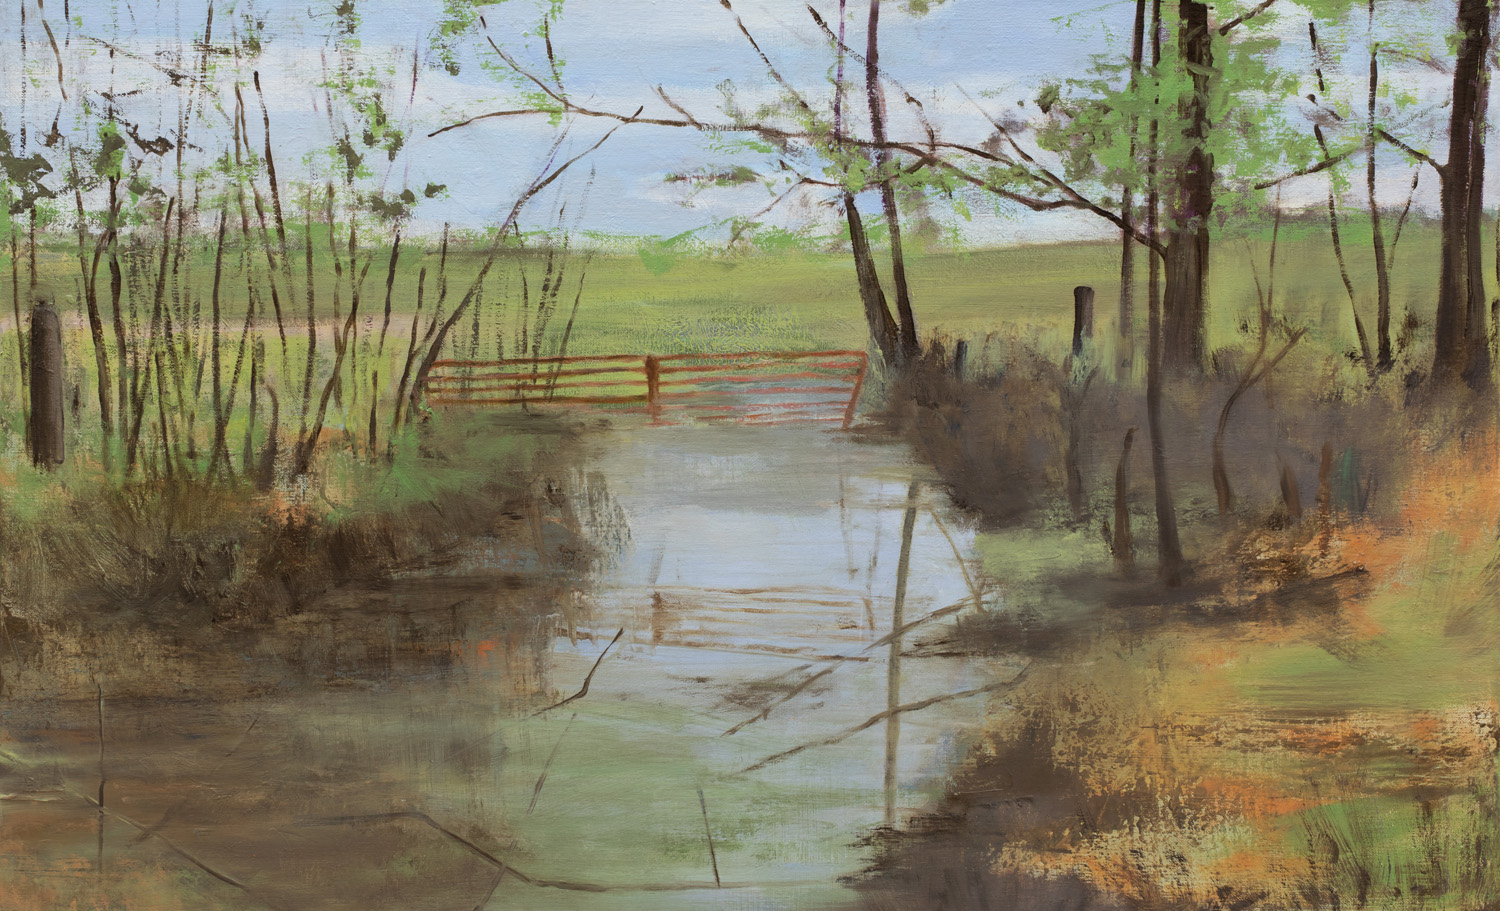 Shelby County Bottomland, Oil on Linen, 22 x 36 Inches